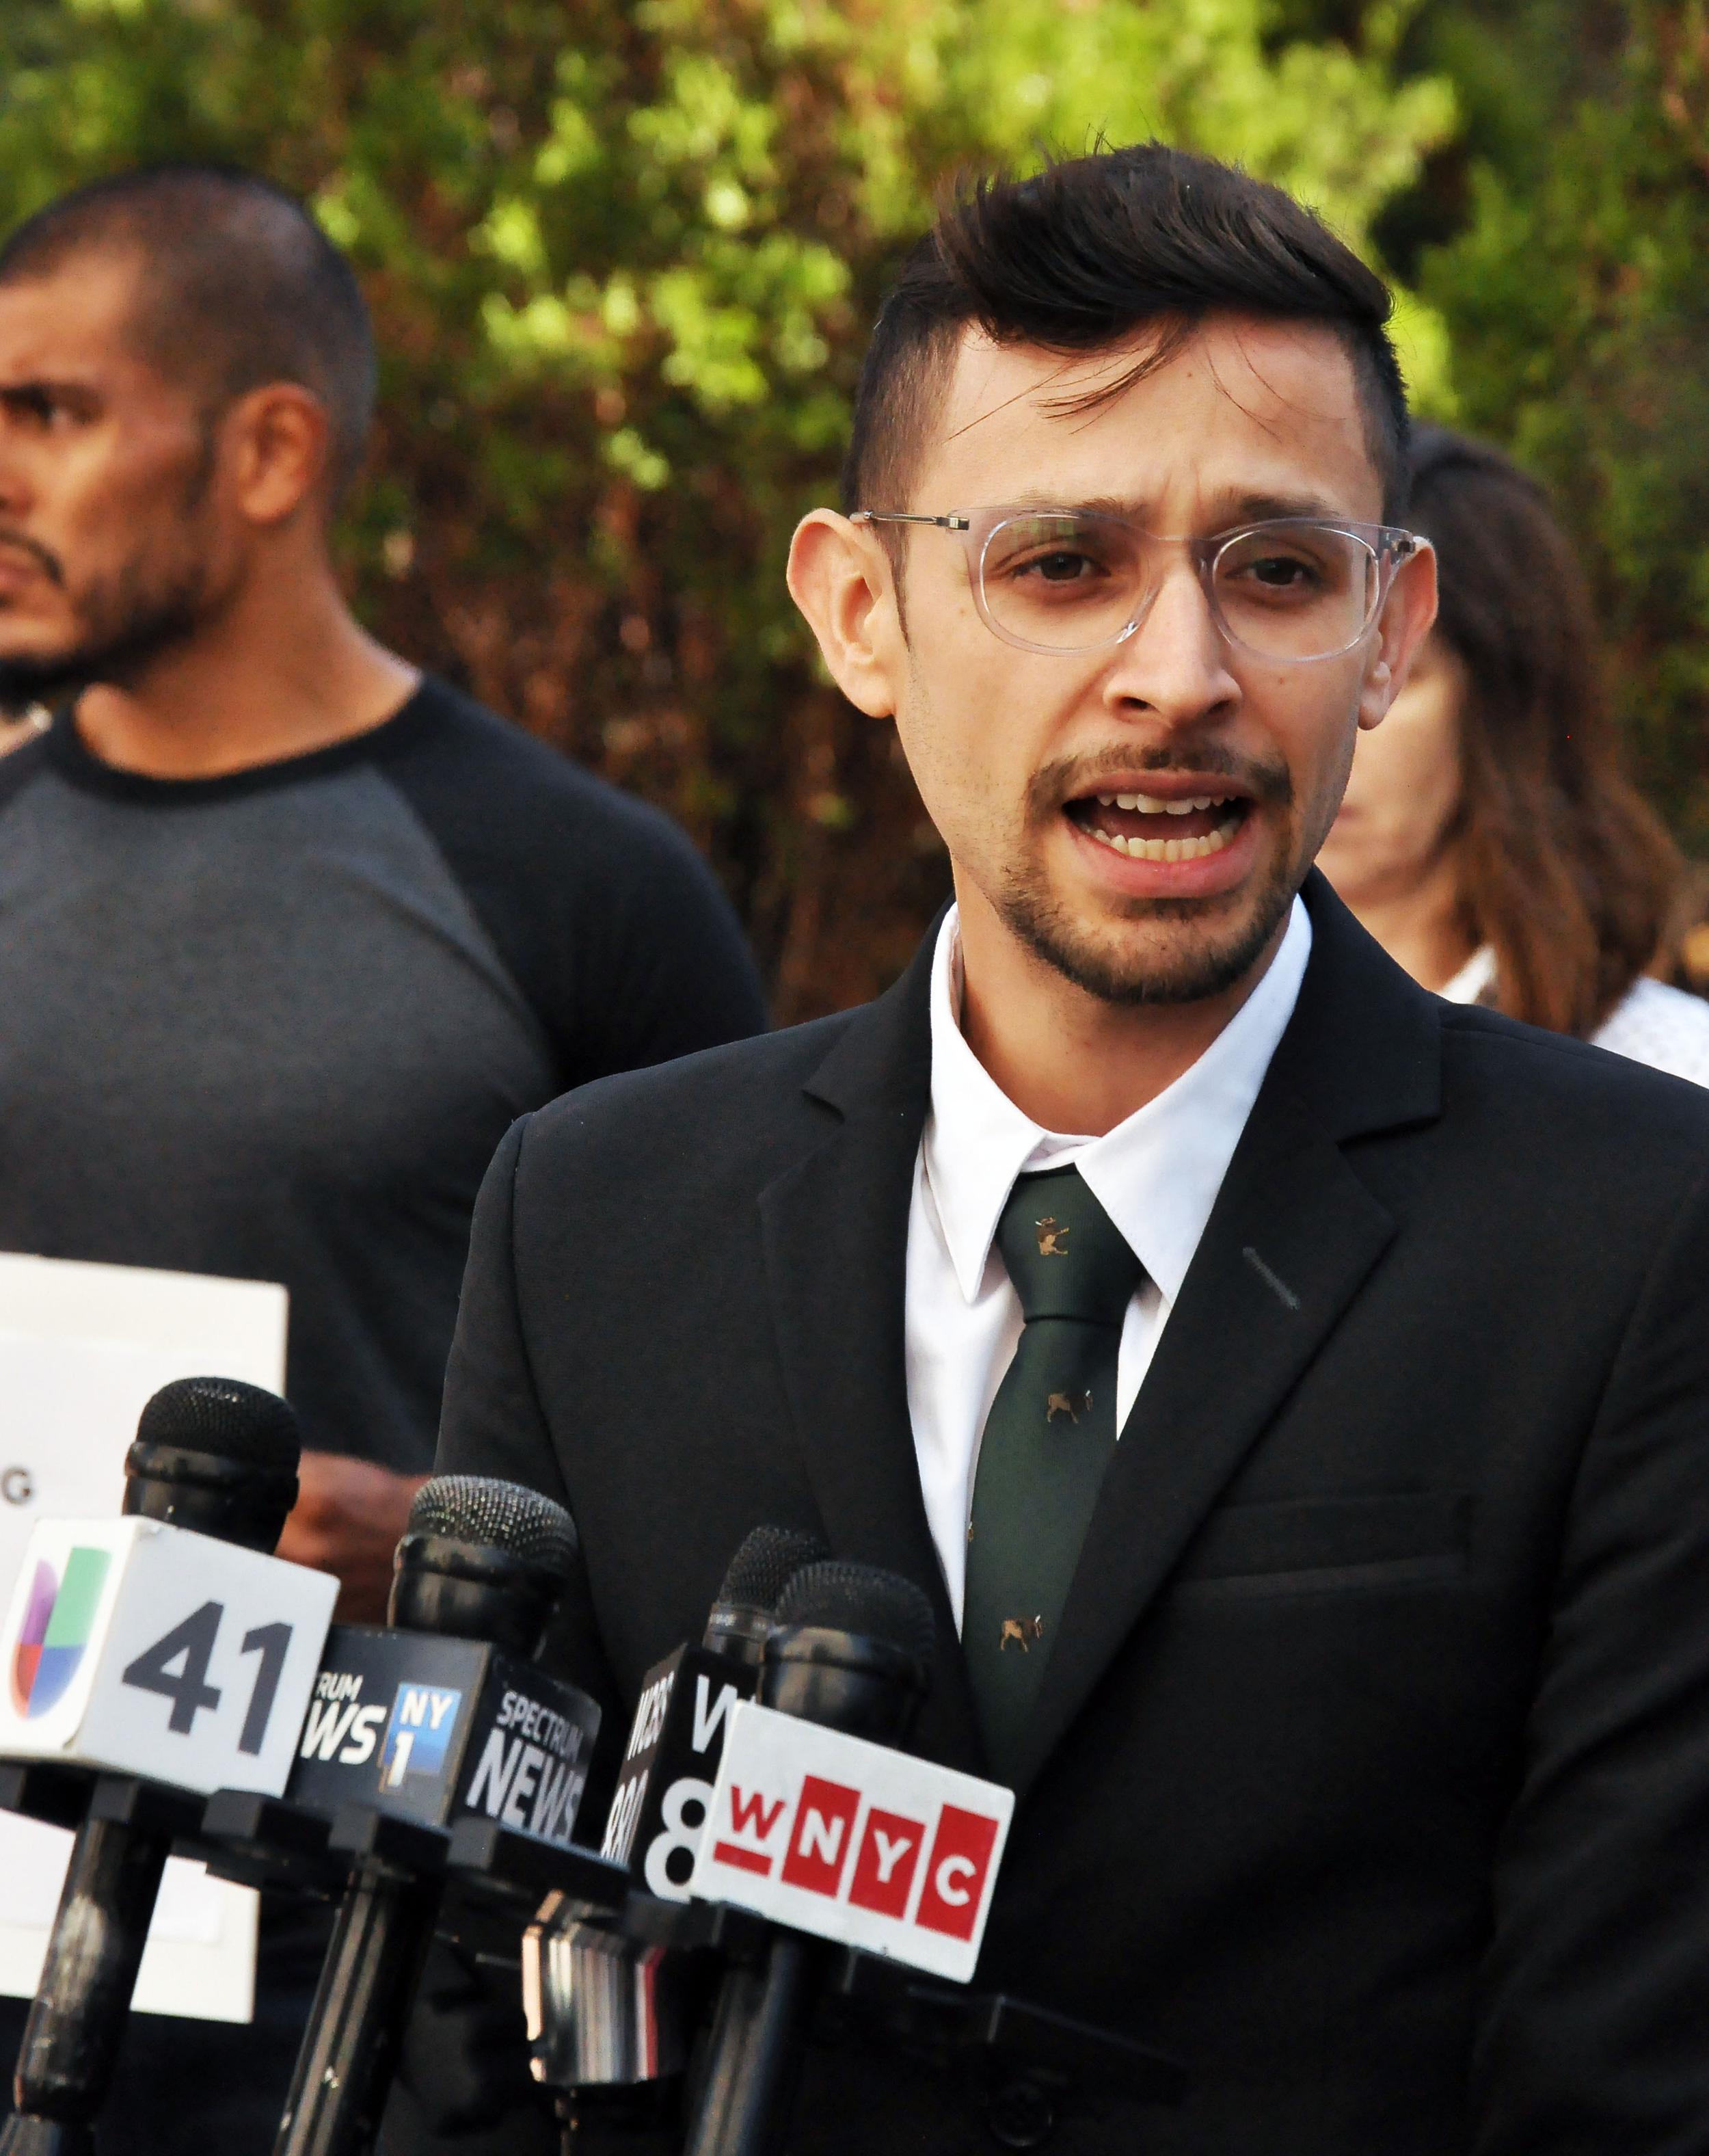 Anthony Posada of our Community Justice Unit speaks out against the NYPD's Gang Databse at a recent rally